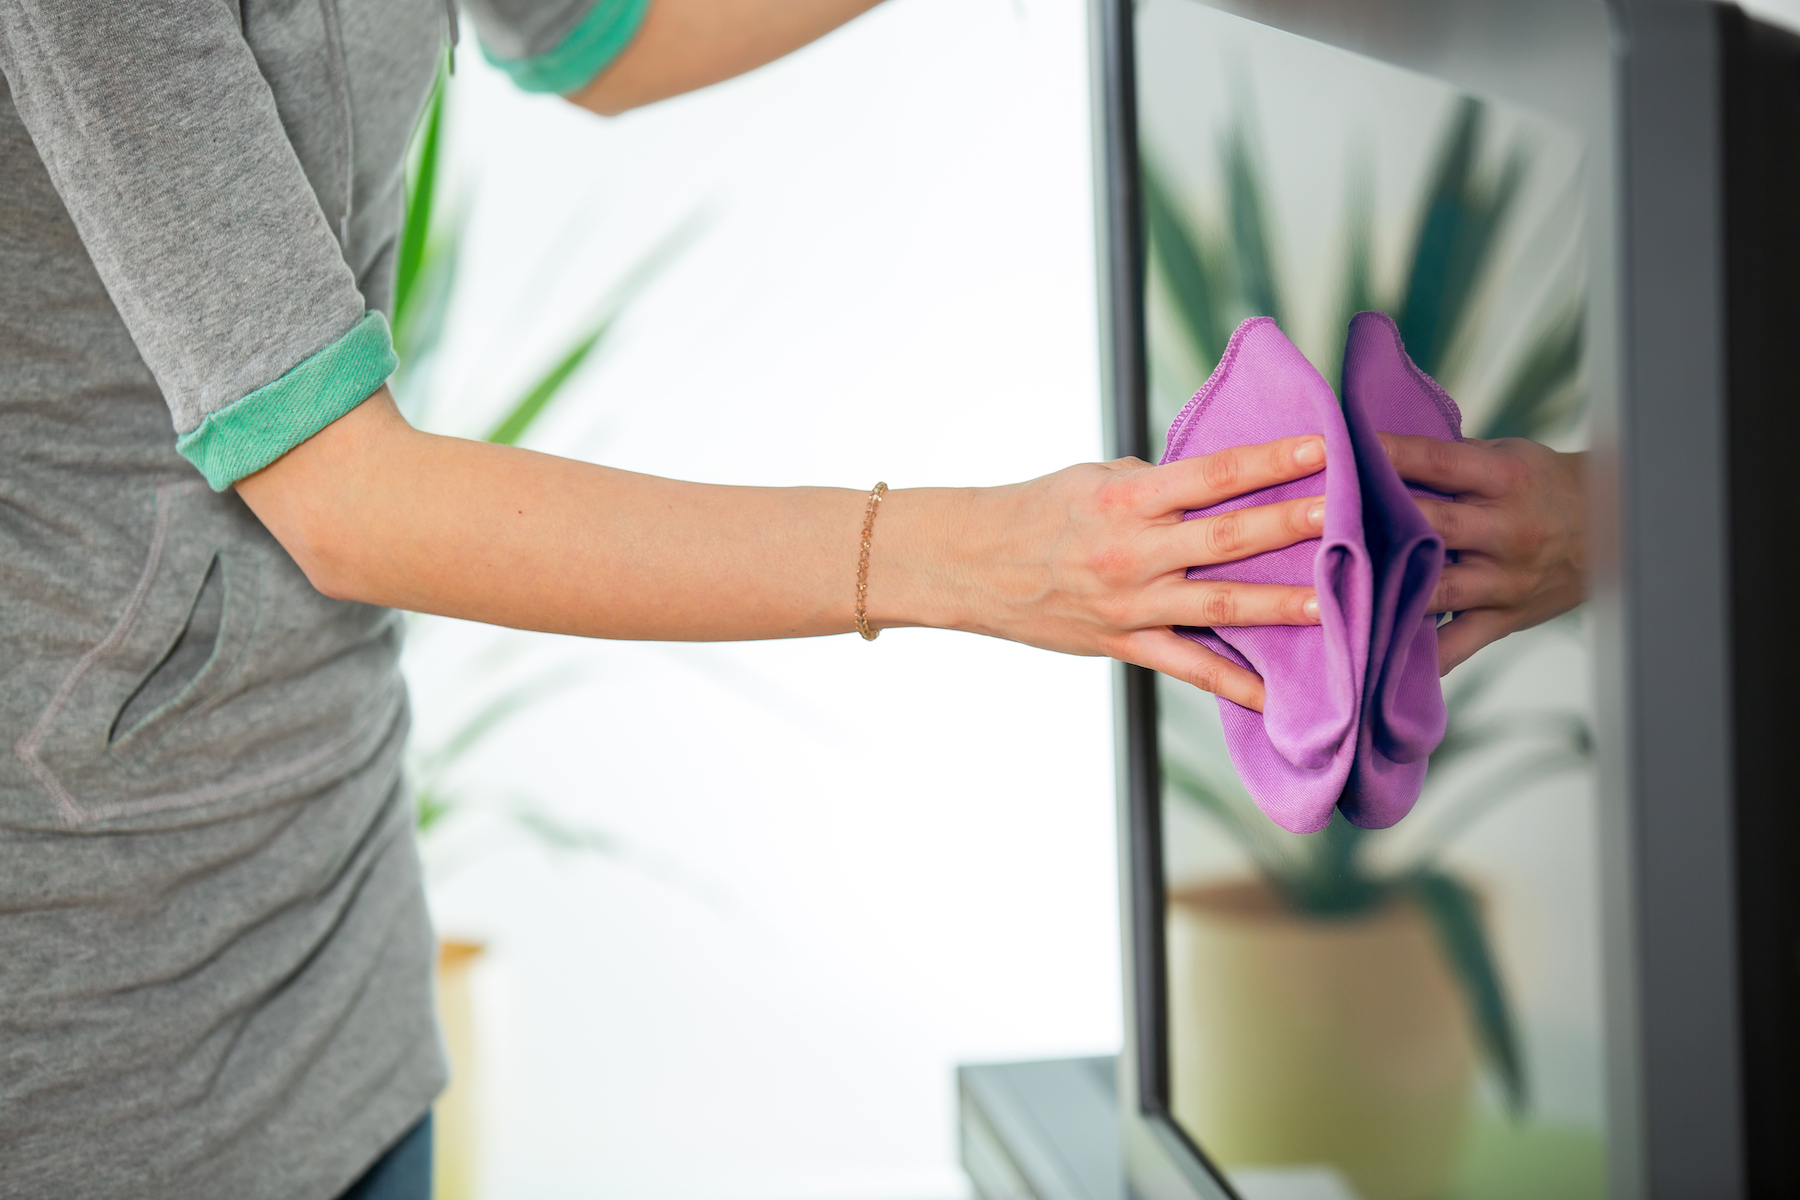 Woman cleaning a flat screen TV with a cloth